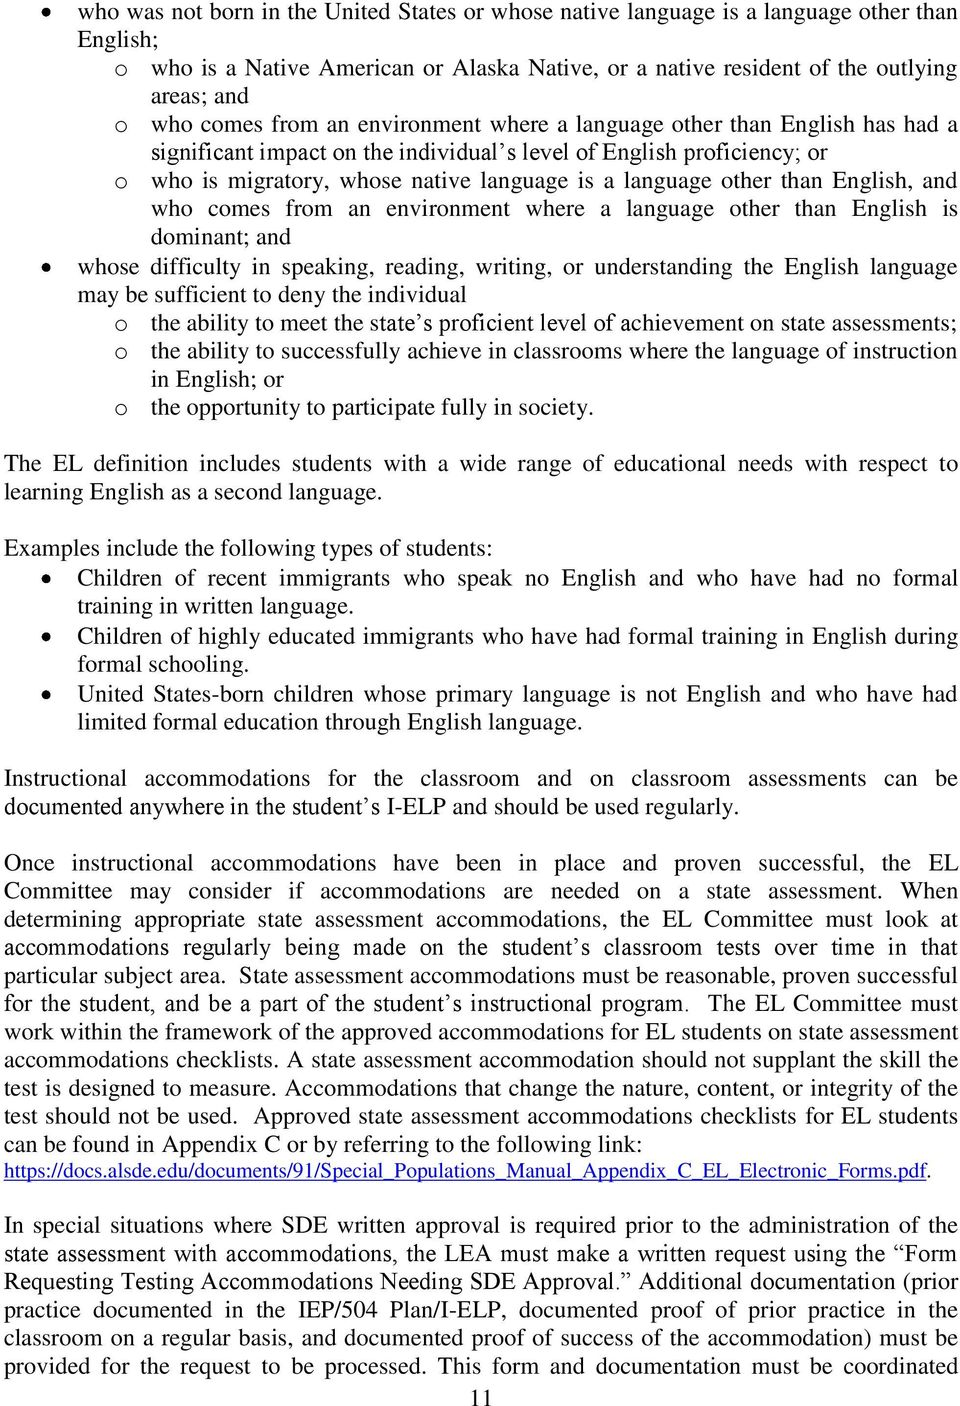 other than English, and who comes from an environment where a language other than English is dominant; and whose difficulty in speaking, reading, writing, or understanding the English language may be